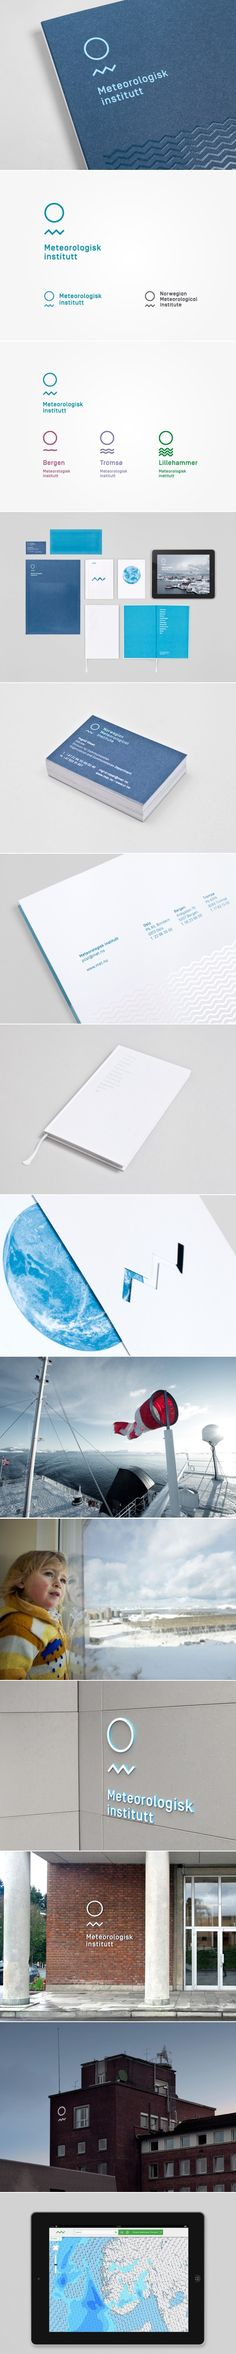 Minimal branding by neue.co #logo